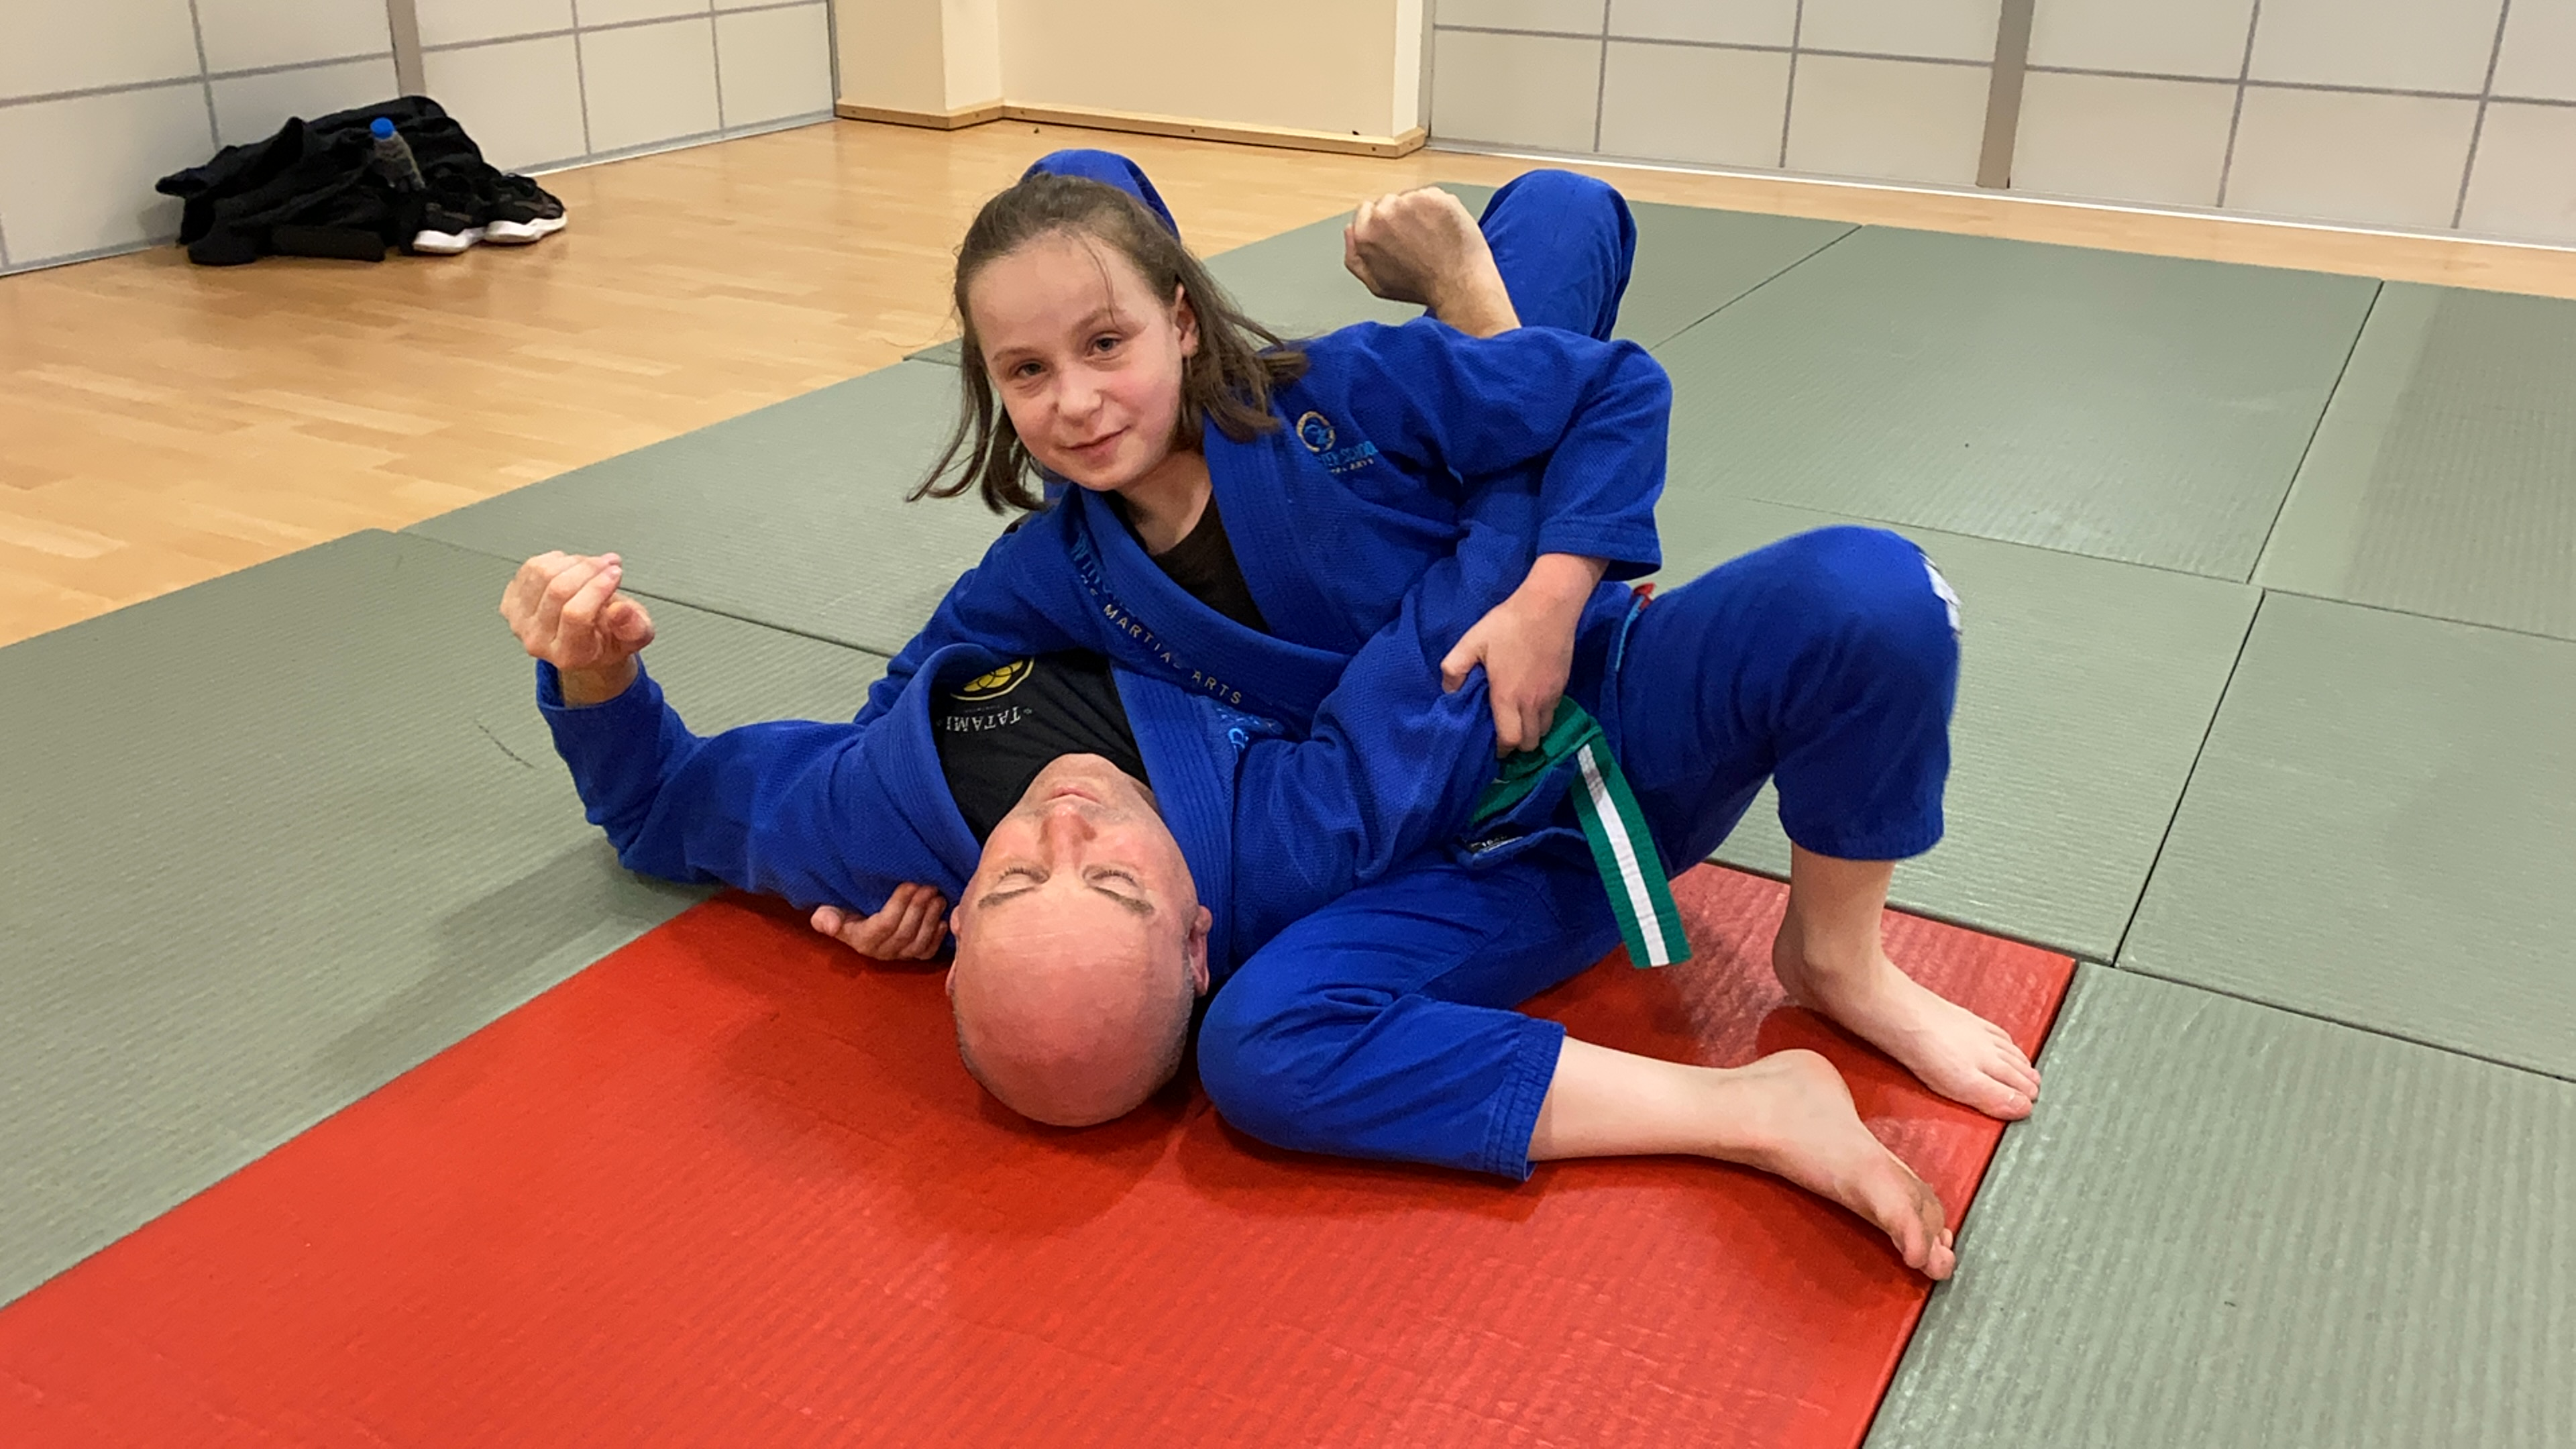 Should My Child Be Taught Martial Arts?